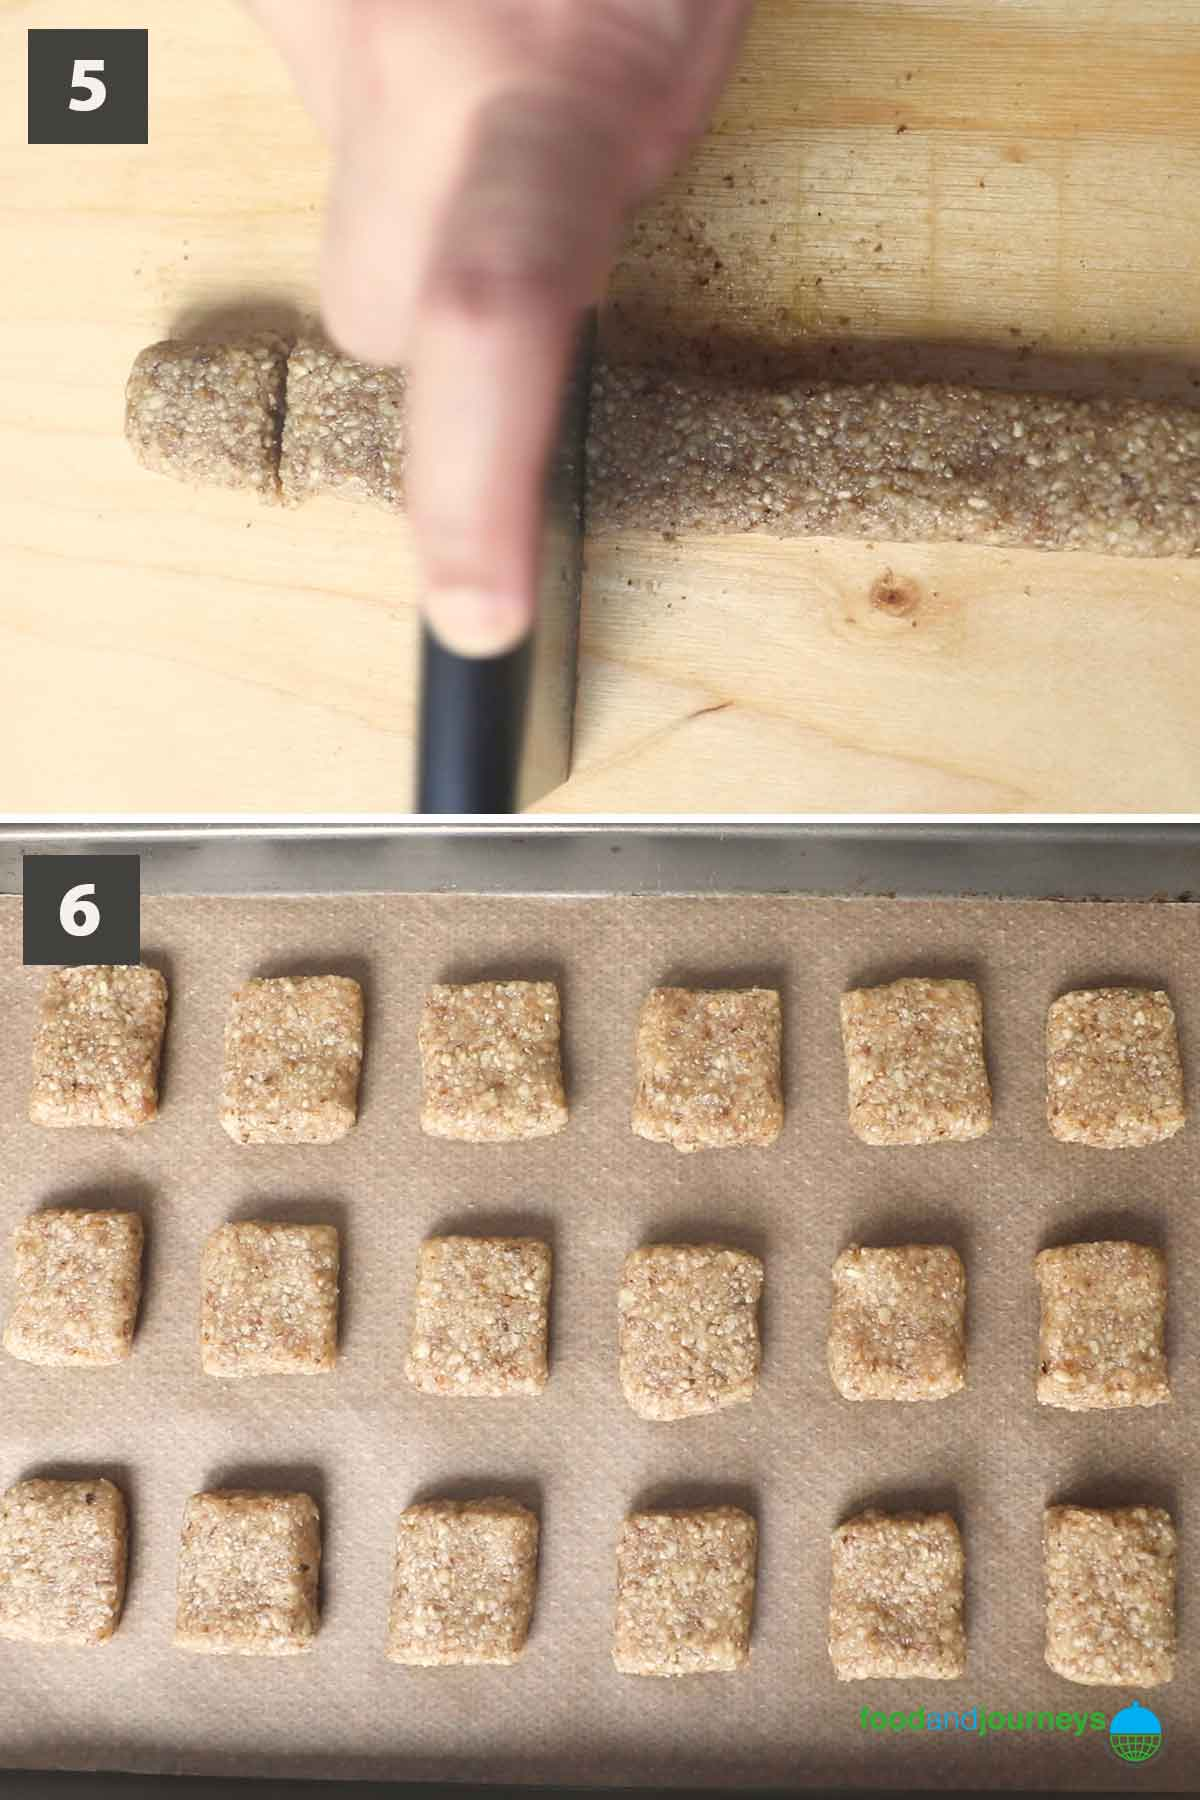 Second part of a collage of images showing the step by step process on how to make Italian walnut cookies at home.